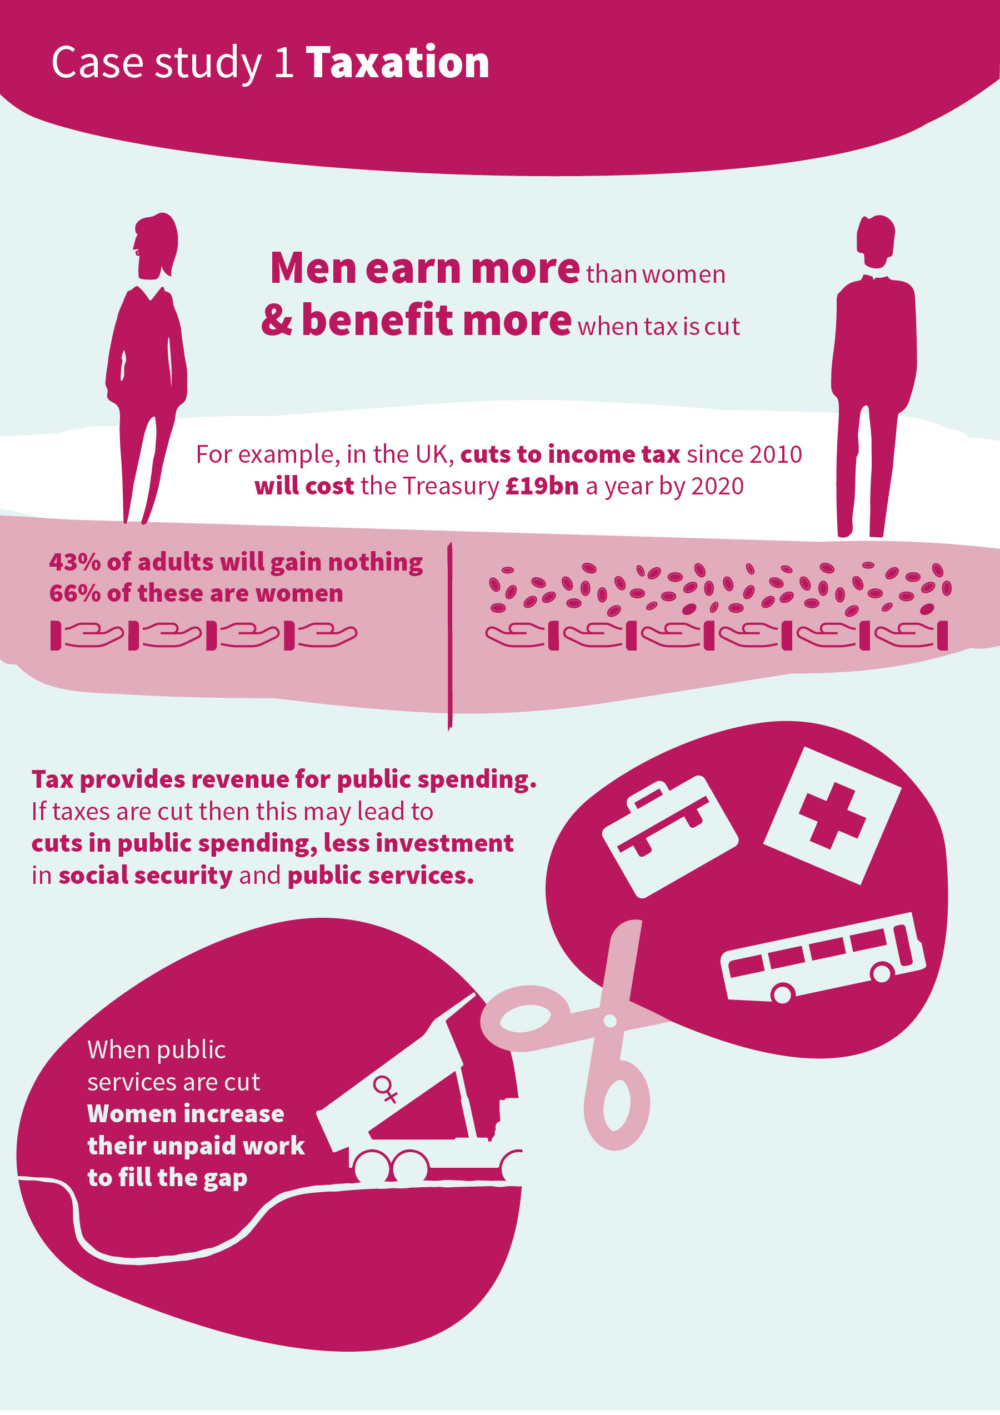 Infographic introducing the key issues around taxation and gender responsive budgeting